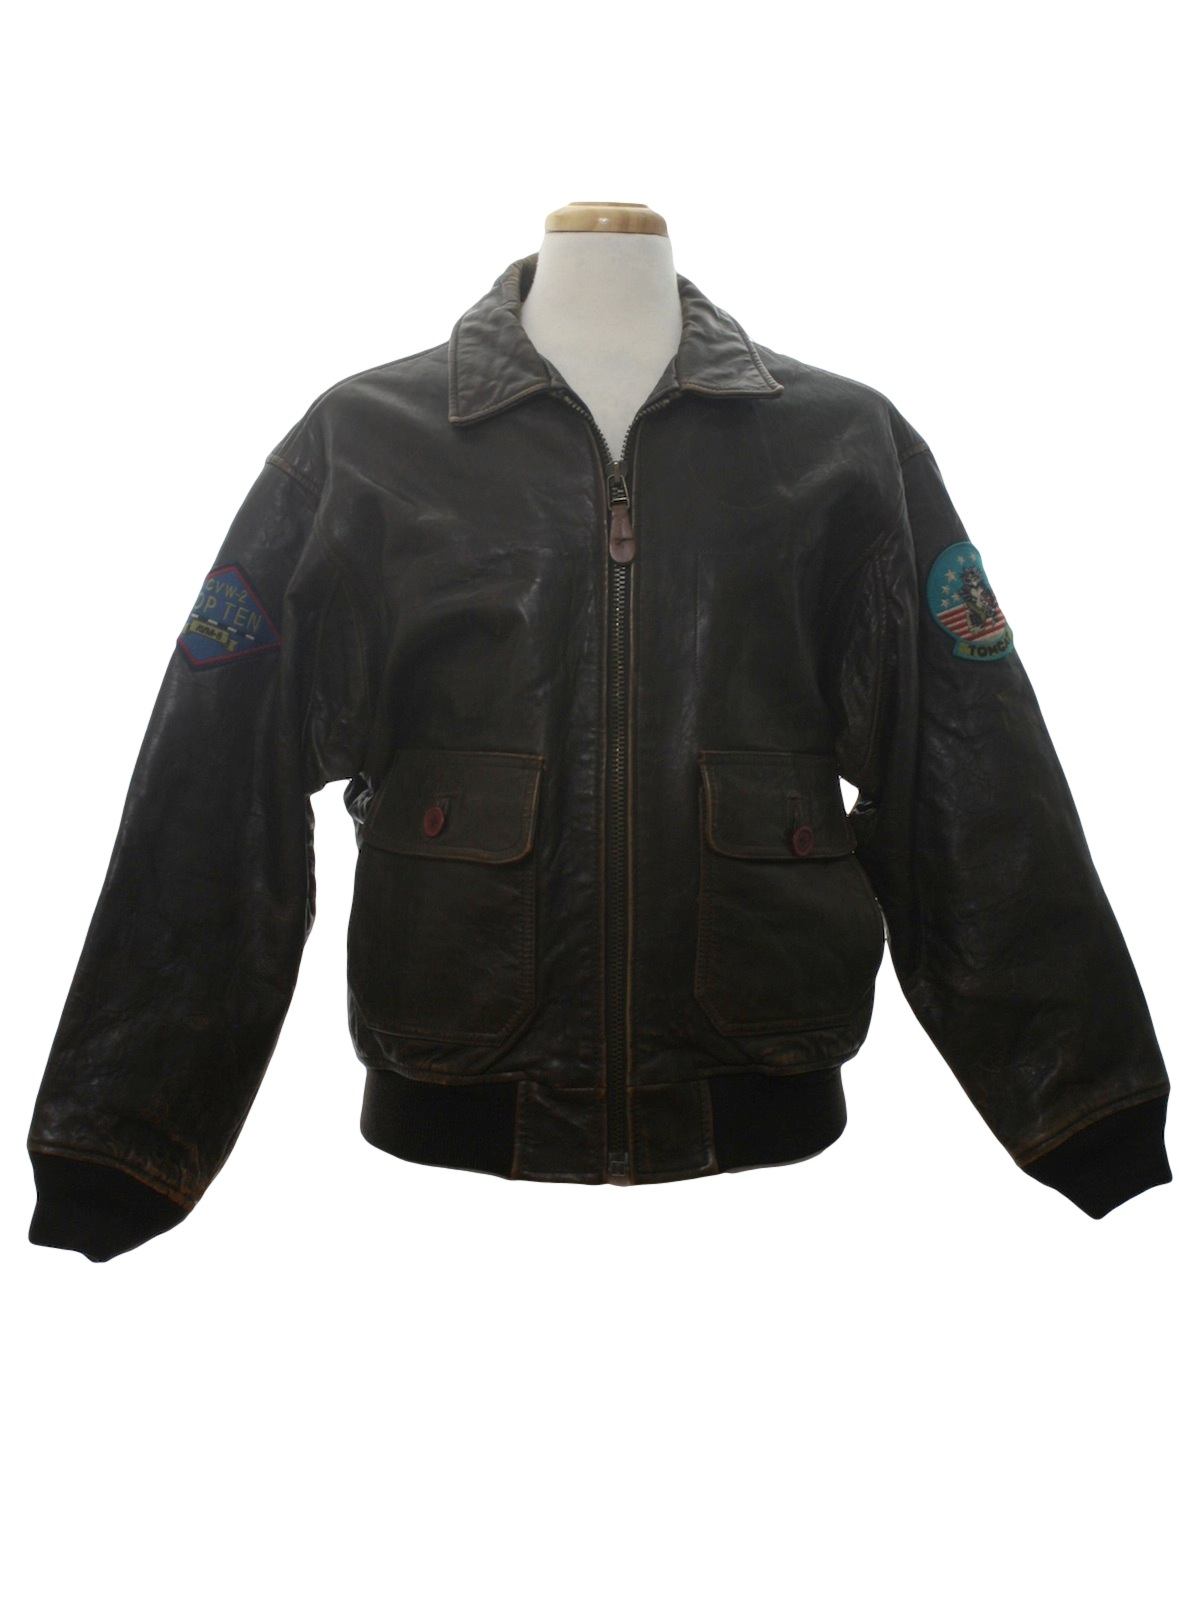 4489ca7775c Avirex Jacket G 80 s Vintage Leather Jacket  80s style made in 90s ...